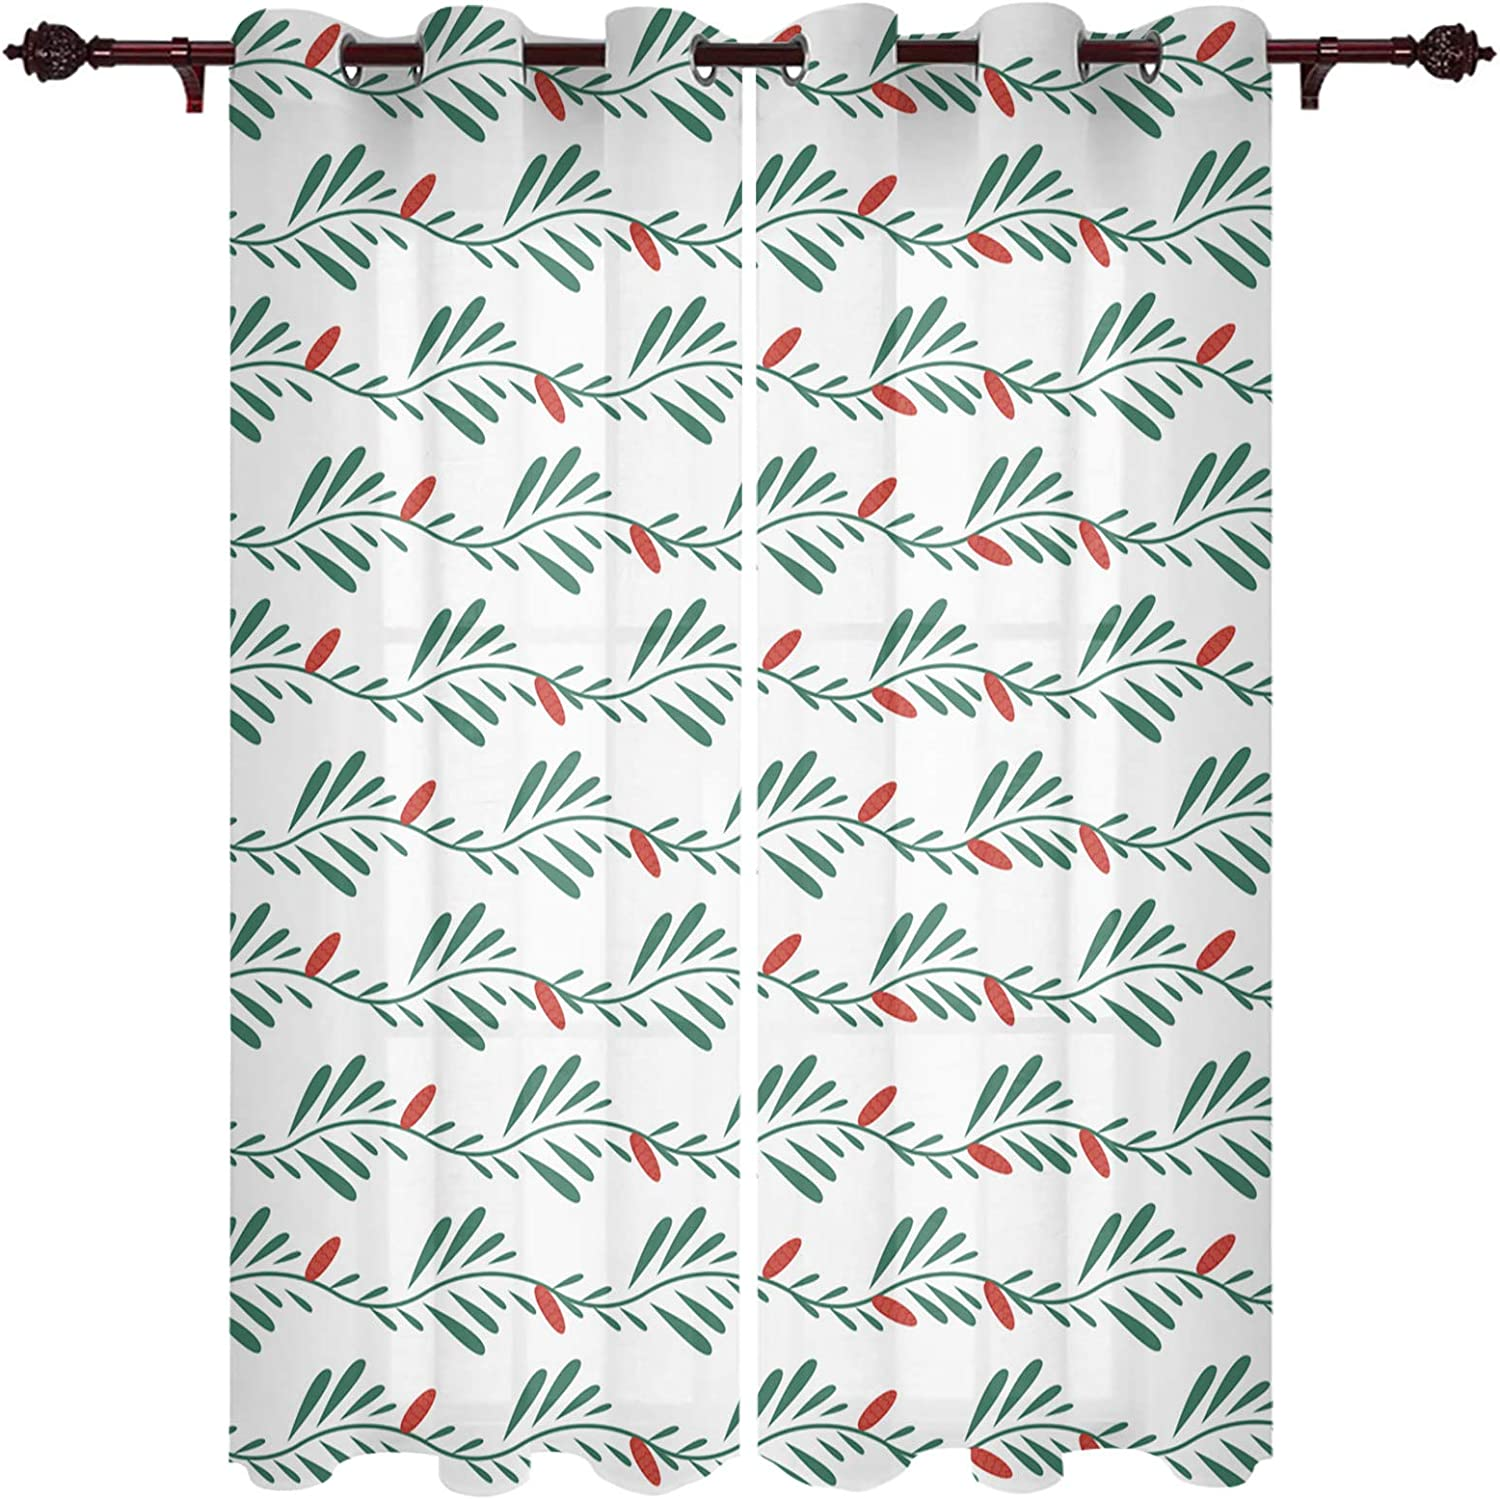 Window Treatment Sheer Credence Curtains Christmas Green Red Leav Max 55% OFF Berries